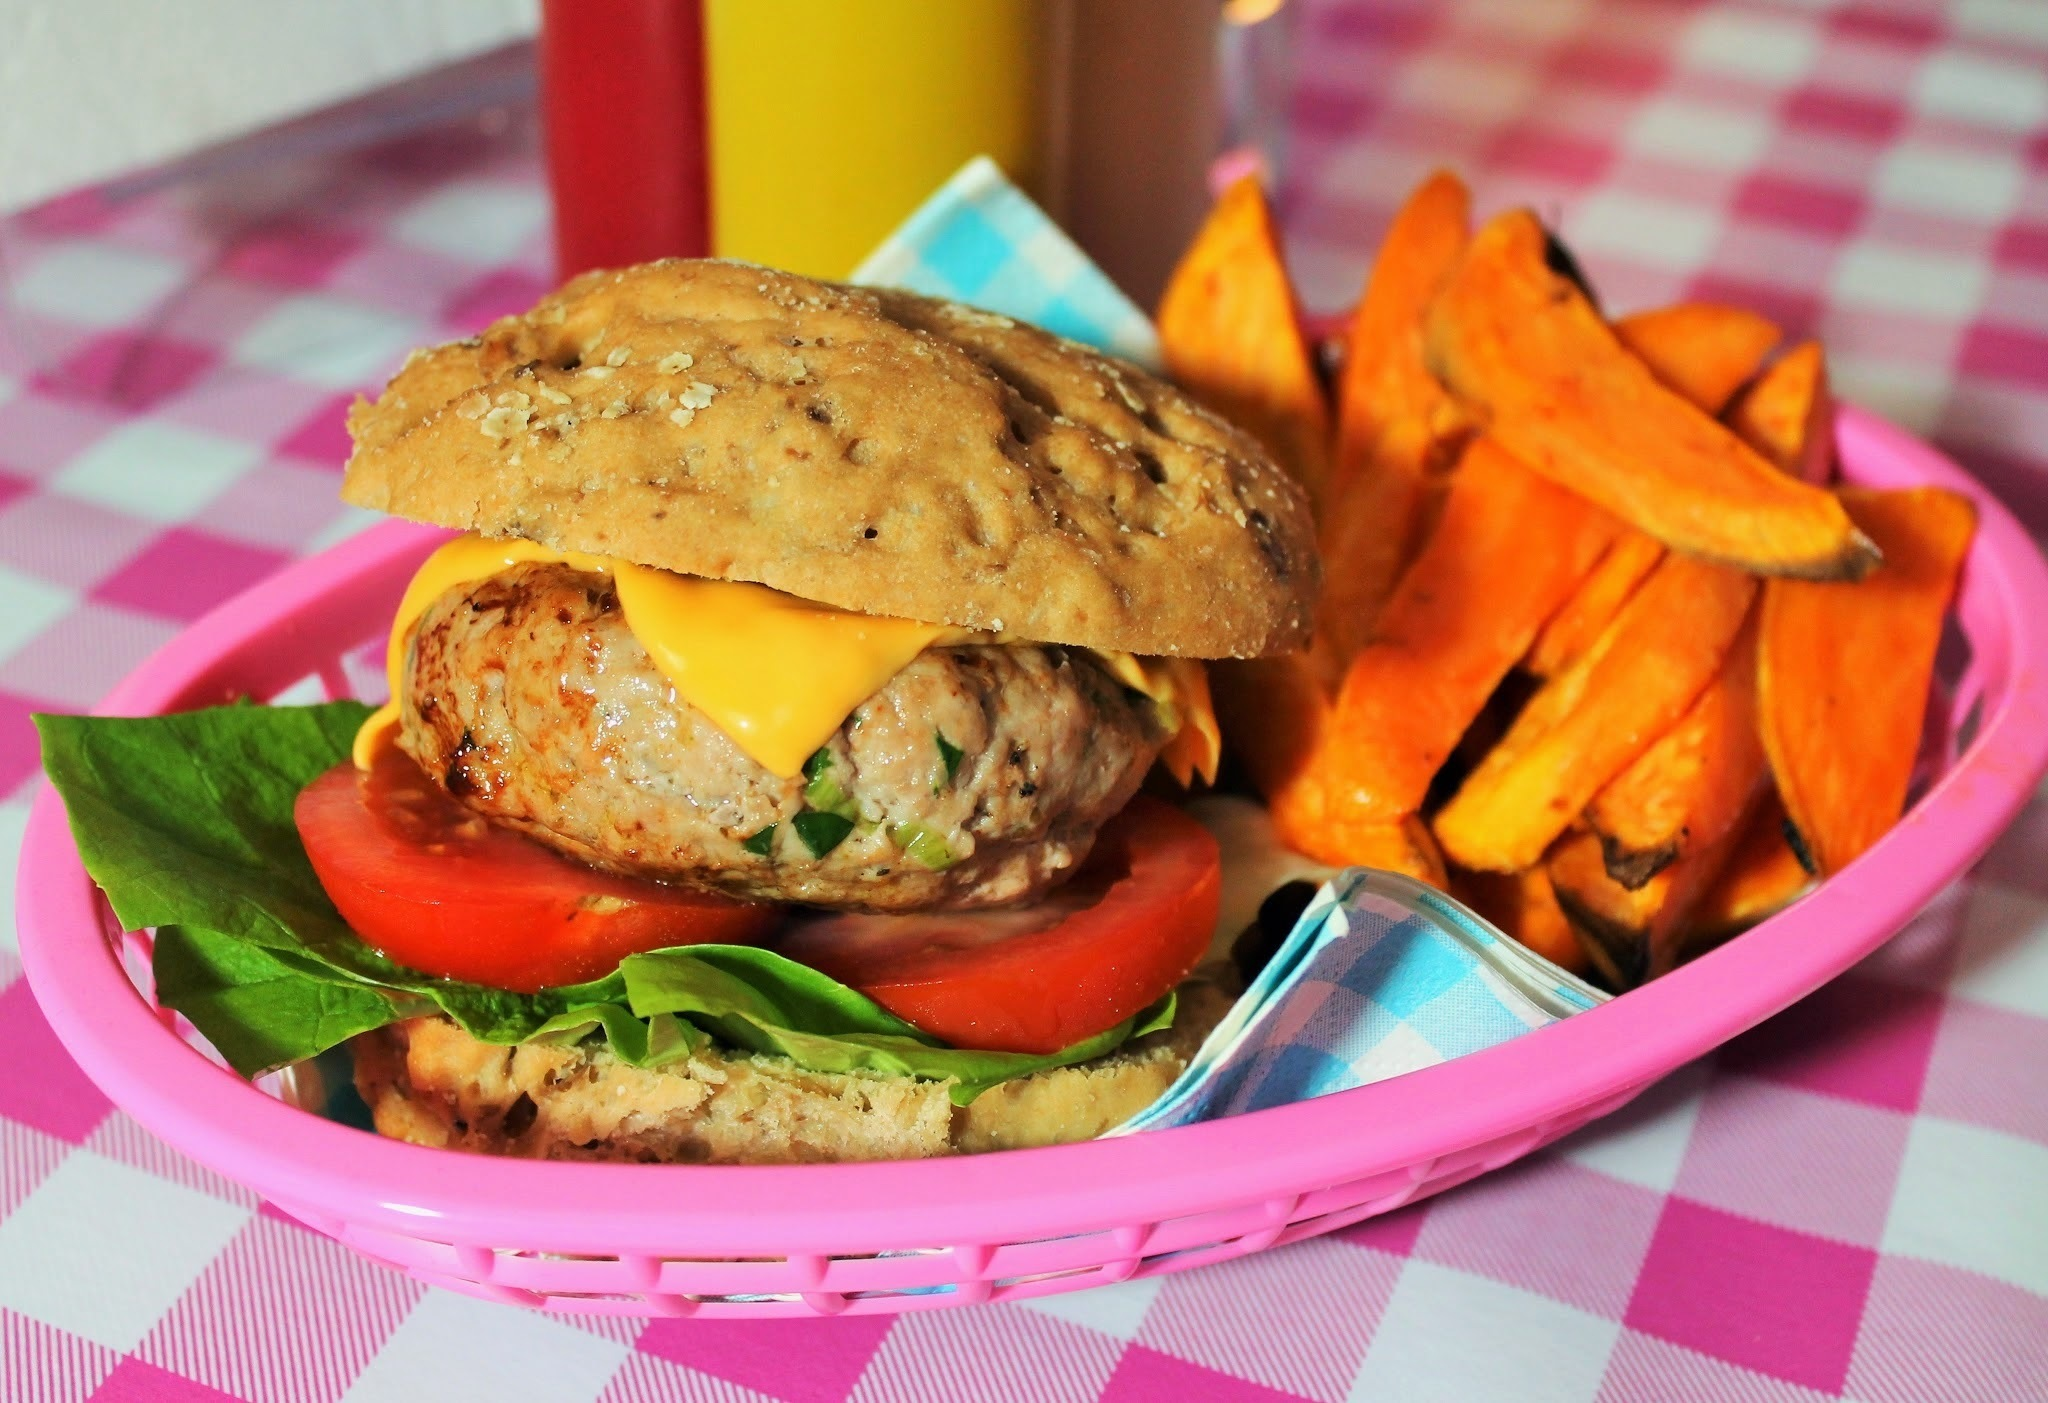 Homemade Pork Burgers Recipe